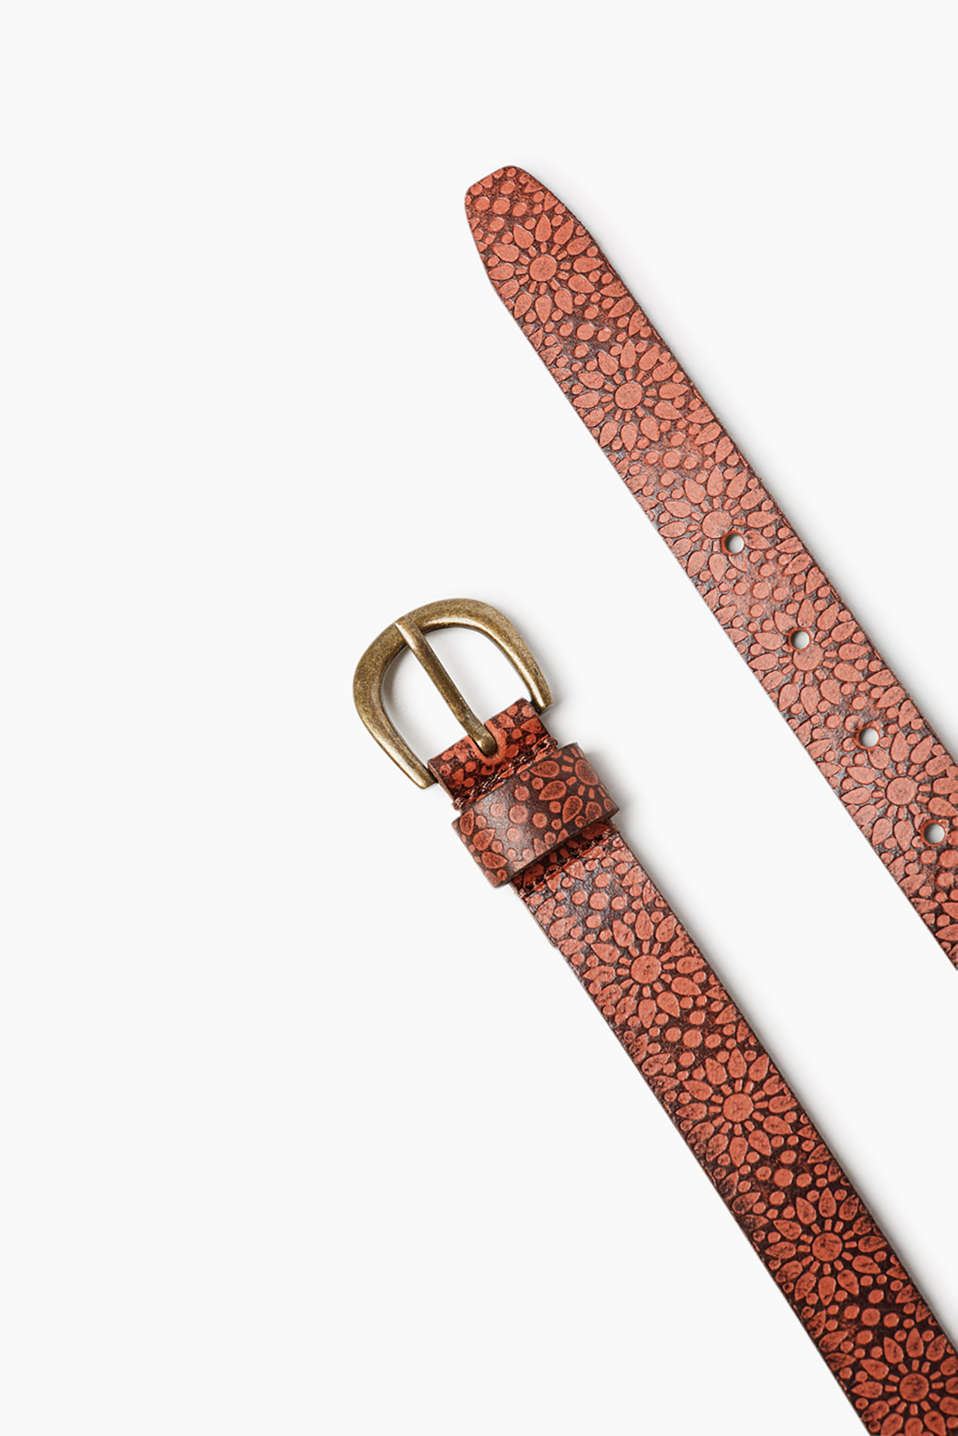 Narrow belt with a metal buckle in buffalo leather